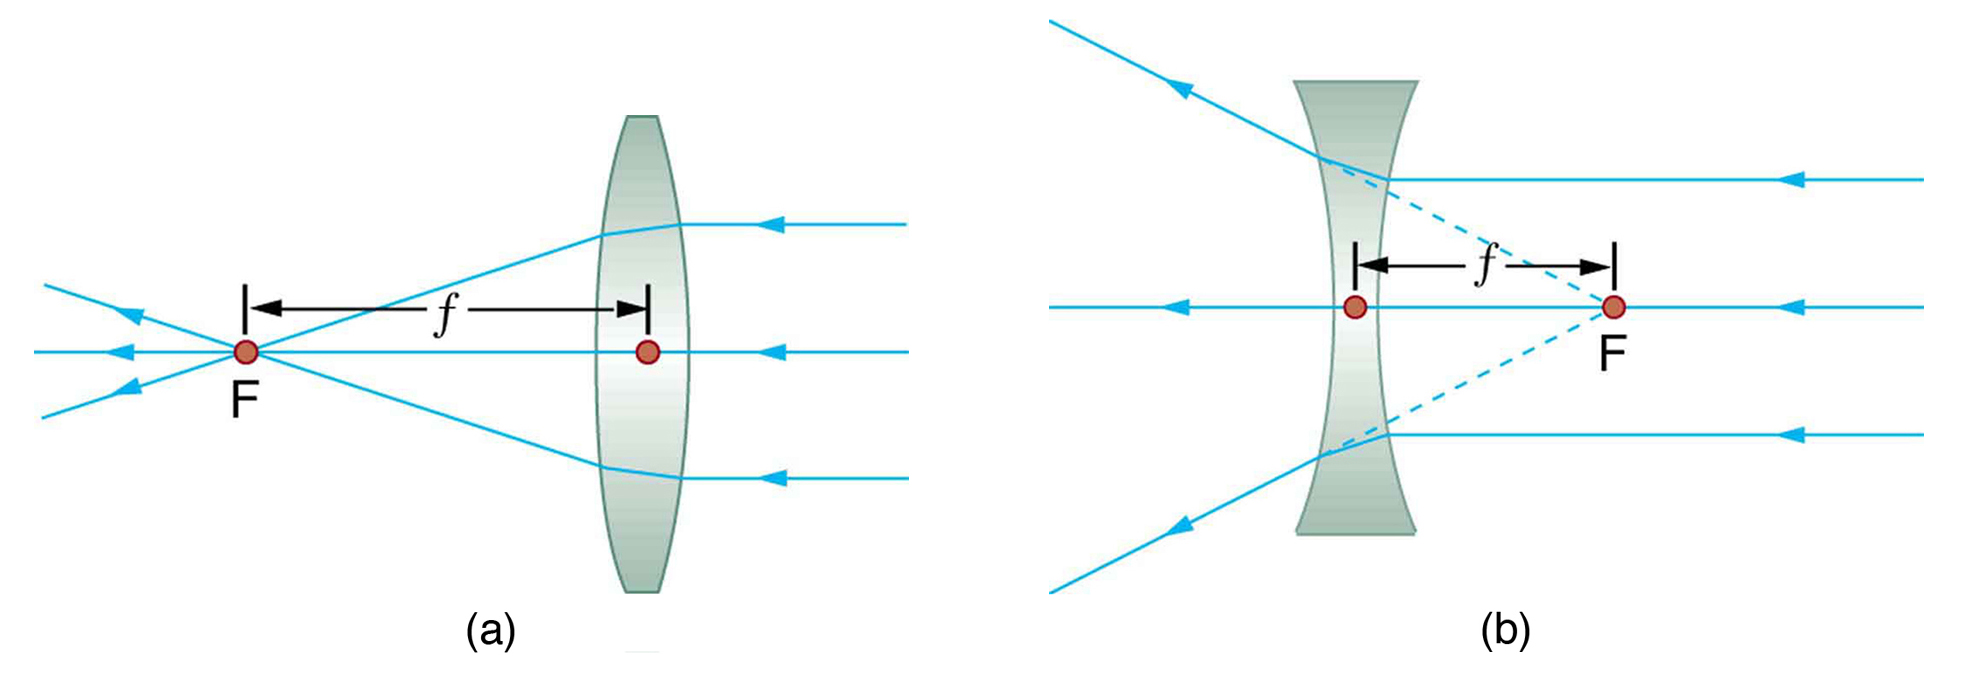 hight resolution of figure a shows three parallel rays incident on the right side of a convex